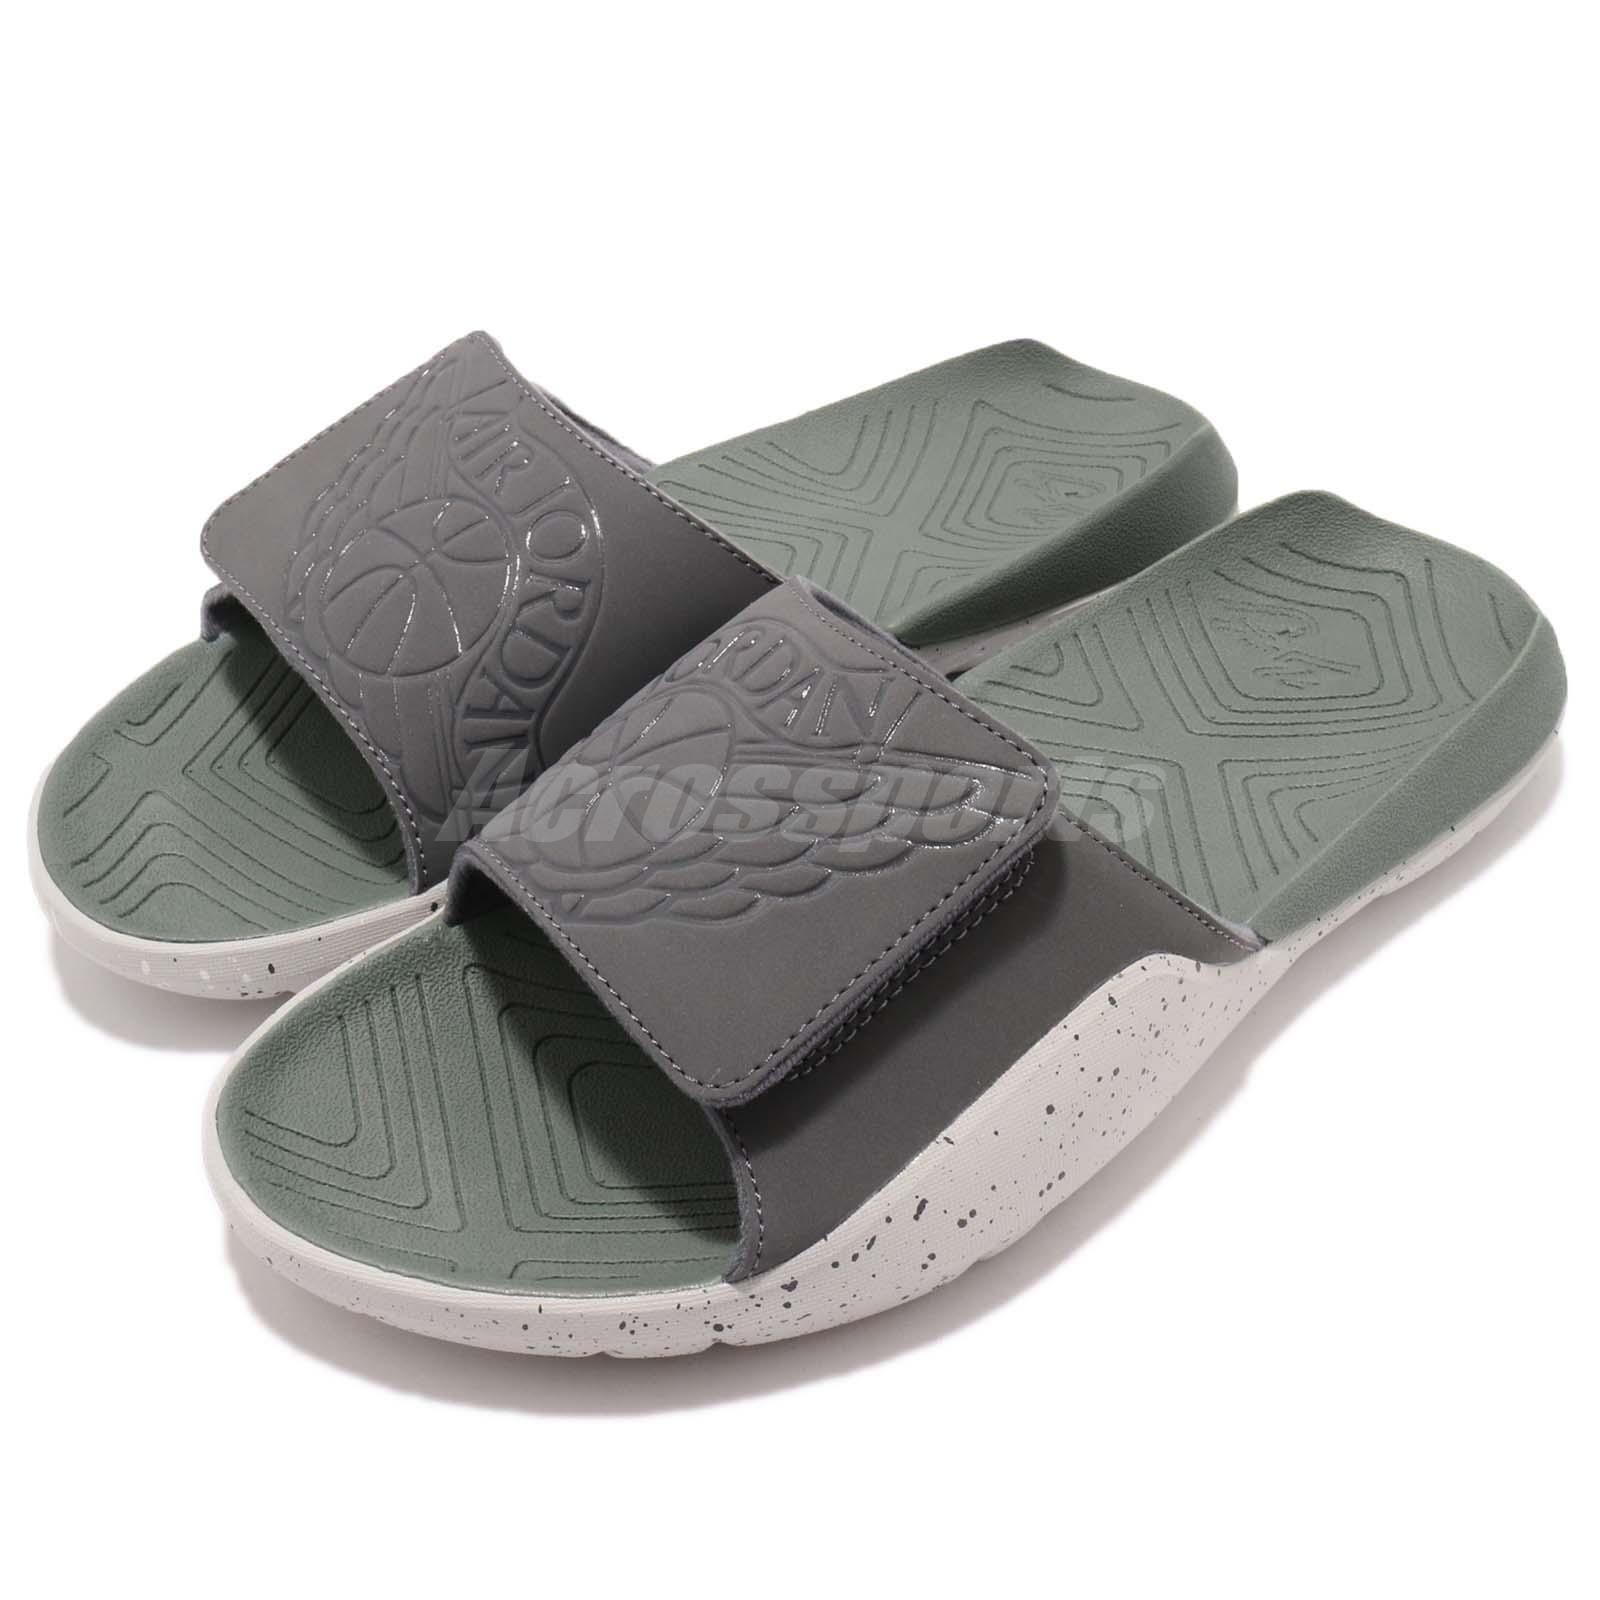 e6f3dc574 Details about Nike Jordan Hydro 7 VII Grey Green Men Sports Sandal Slides  Slippers AA2517-035